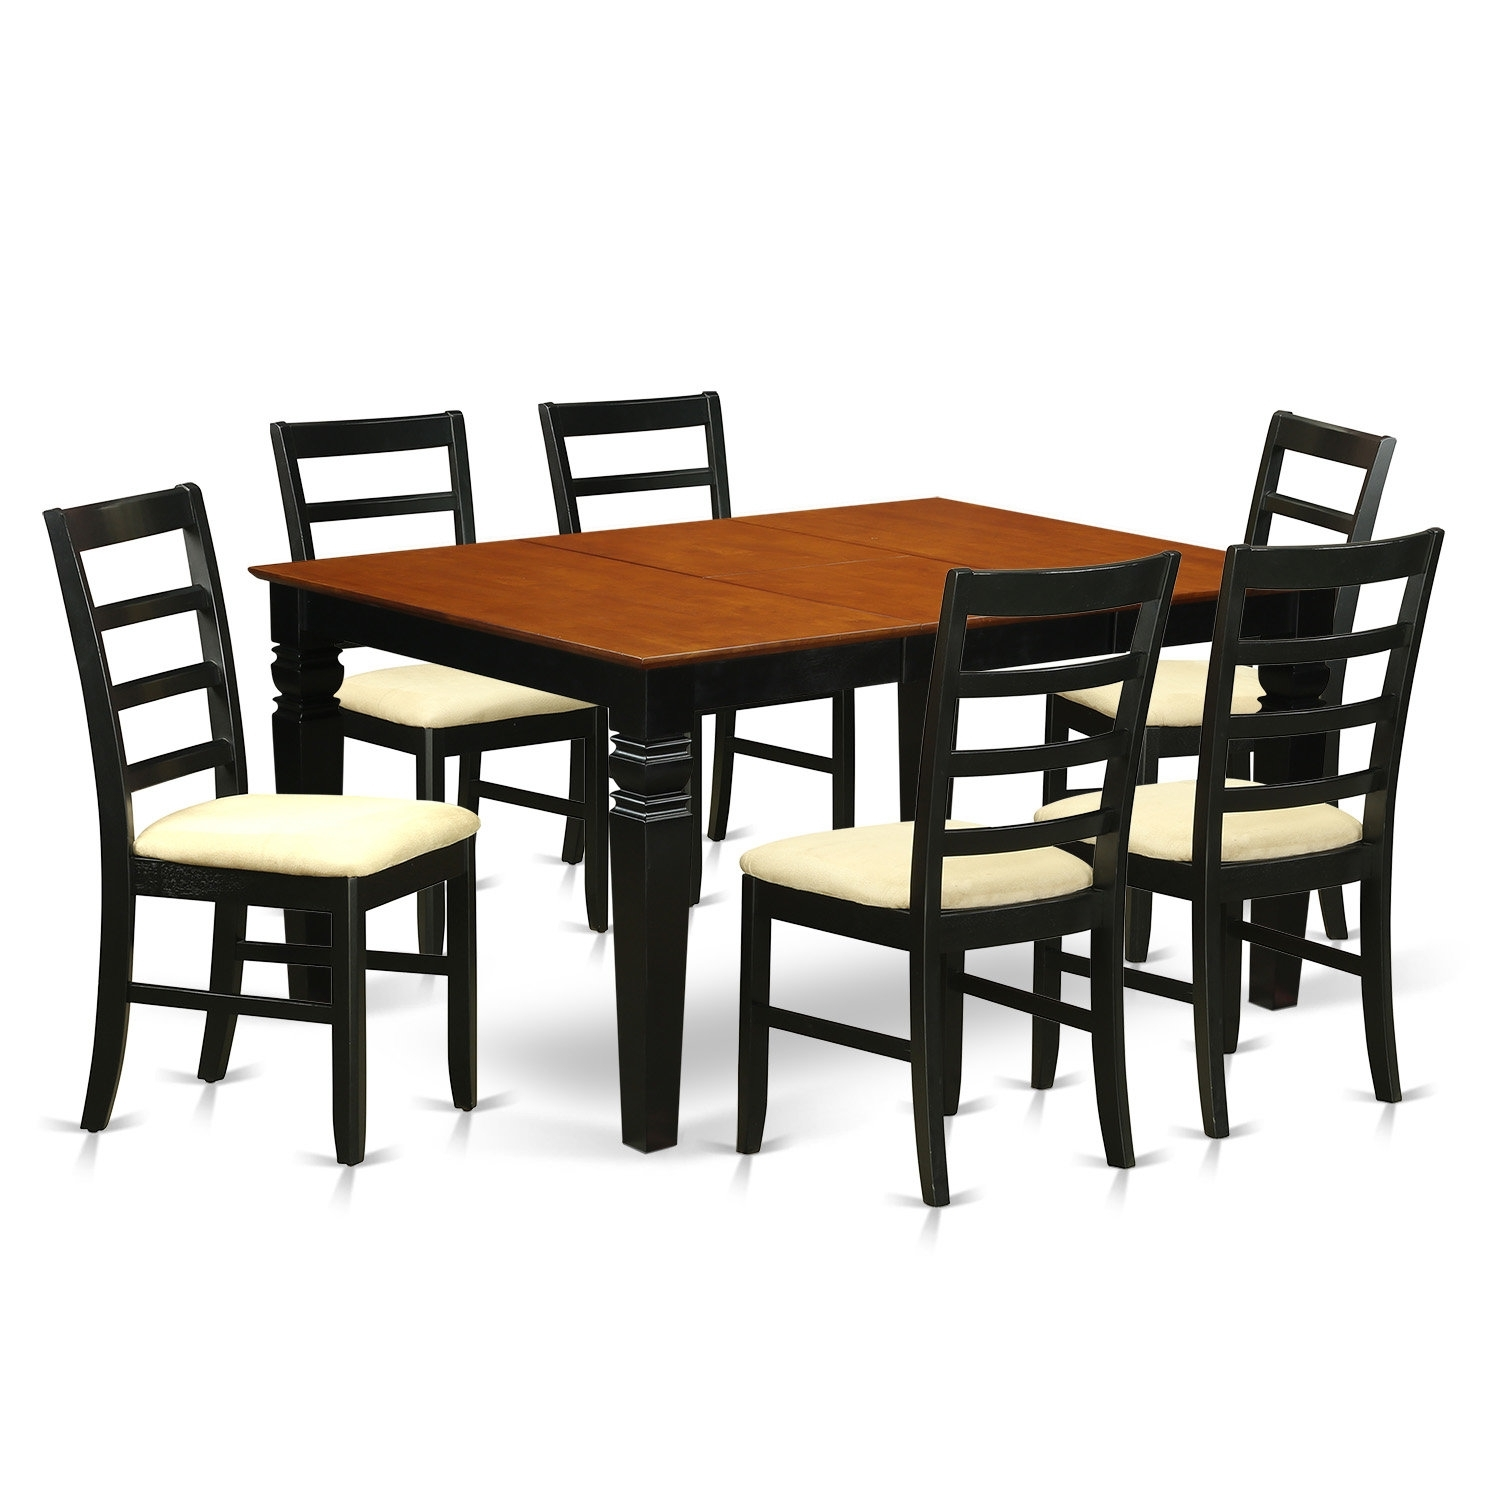 Red Barrel Studio Chandler 7 Piece Dining Set | Wayfair Regarding Latest Chandler Extension Dining Tables (View 13 of 20)